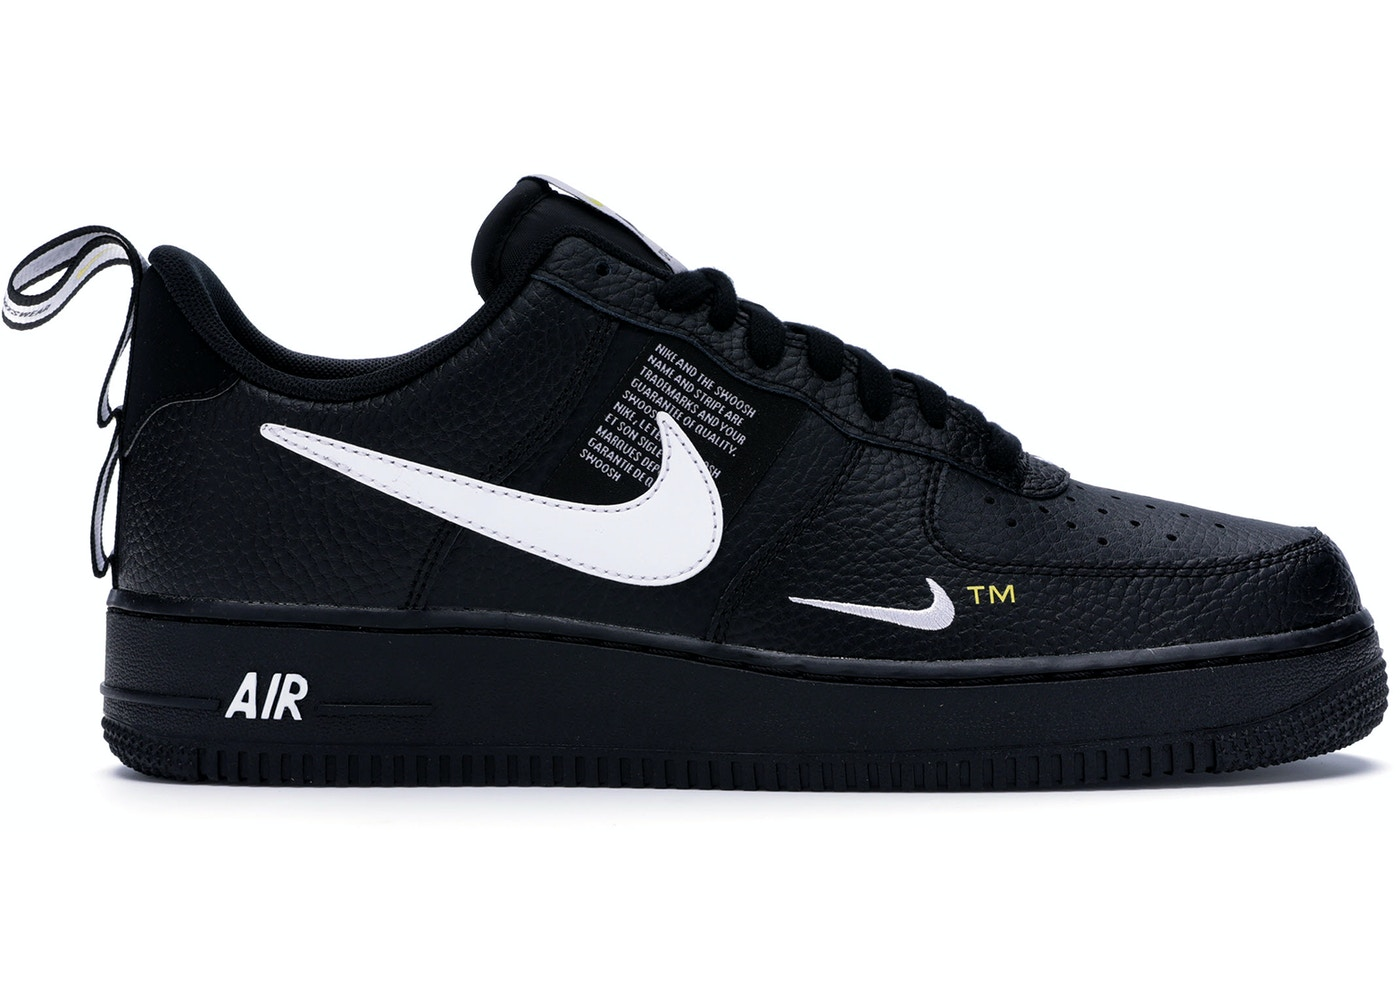 innovative design 9a735 fc59d Buy Nike Air Force Shoes  Deadstock Sneakers